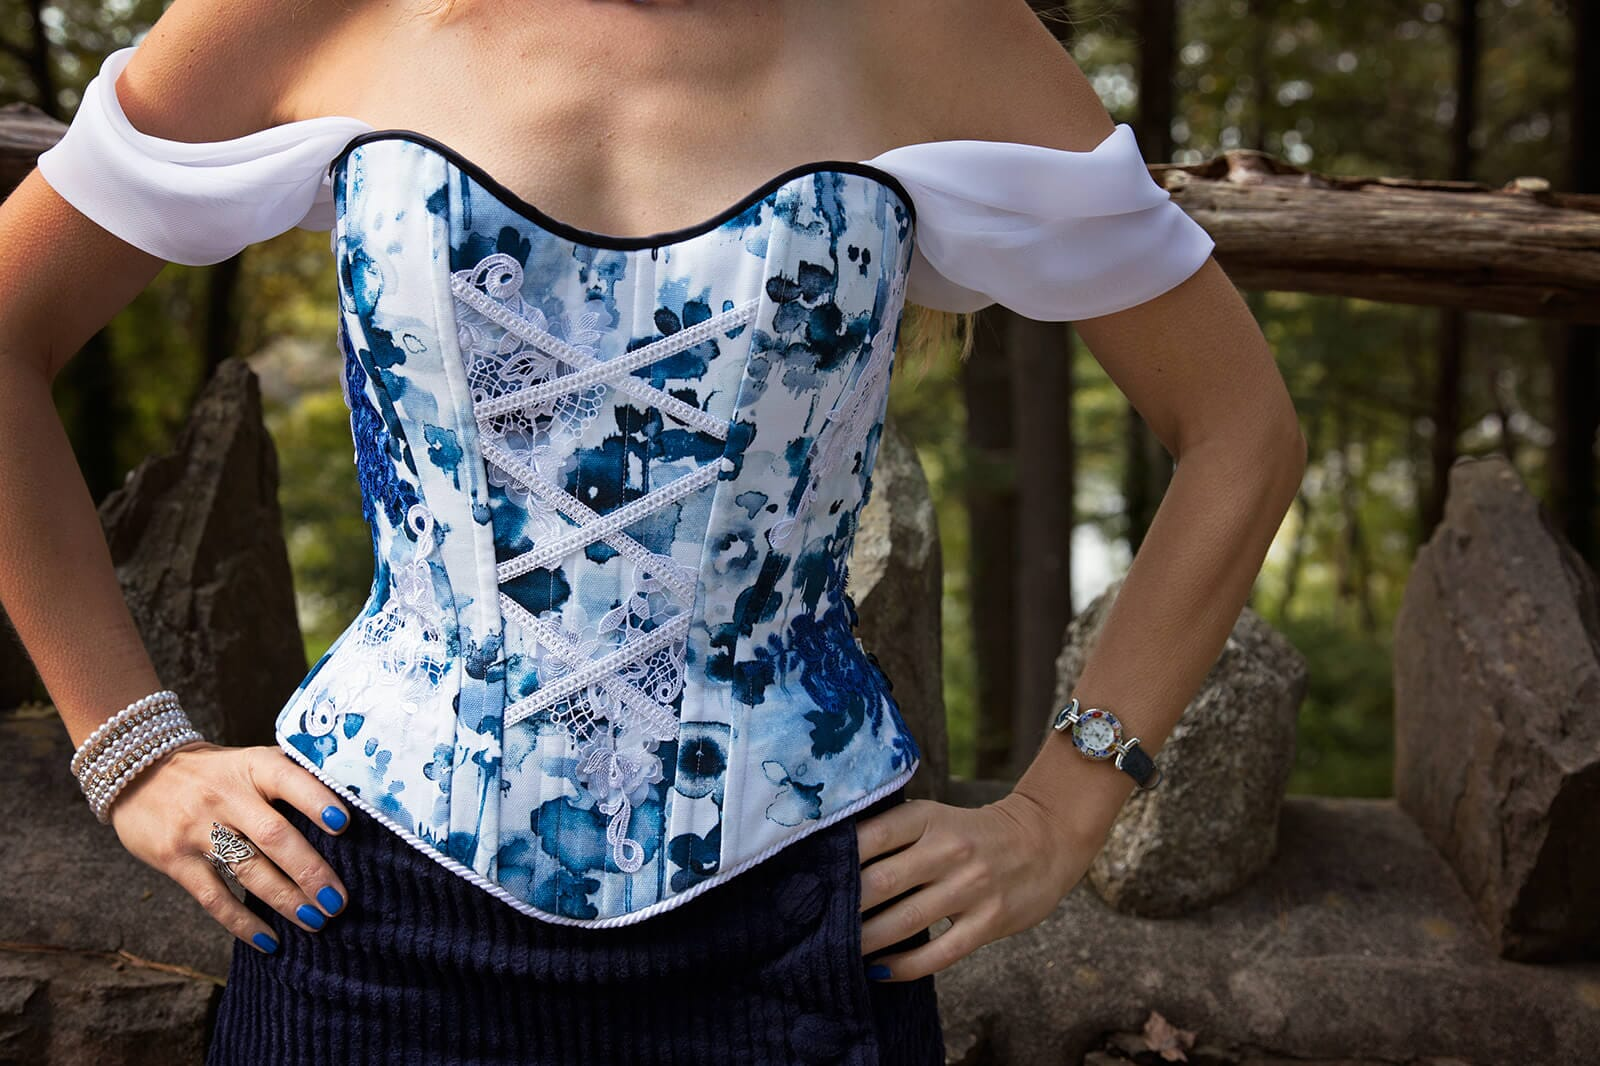 Woman in Off-Shoulder Corset with Stones and trees